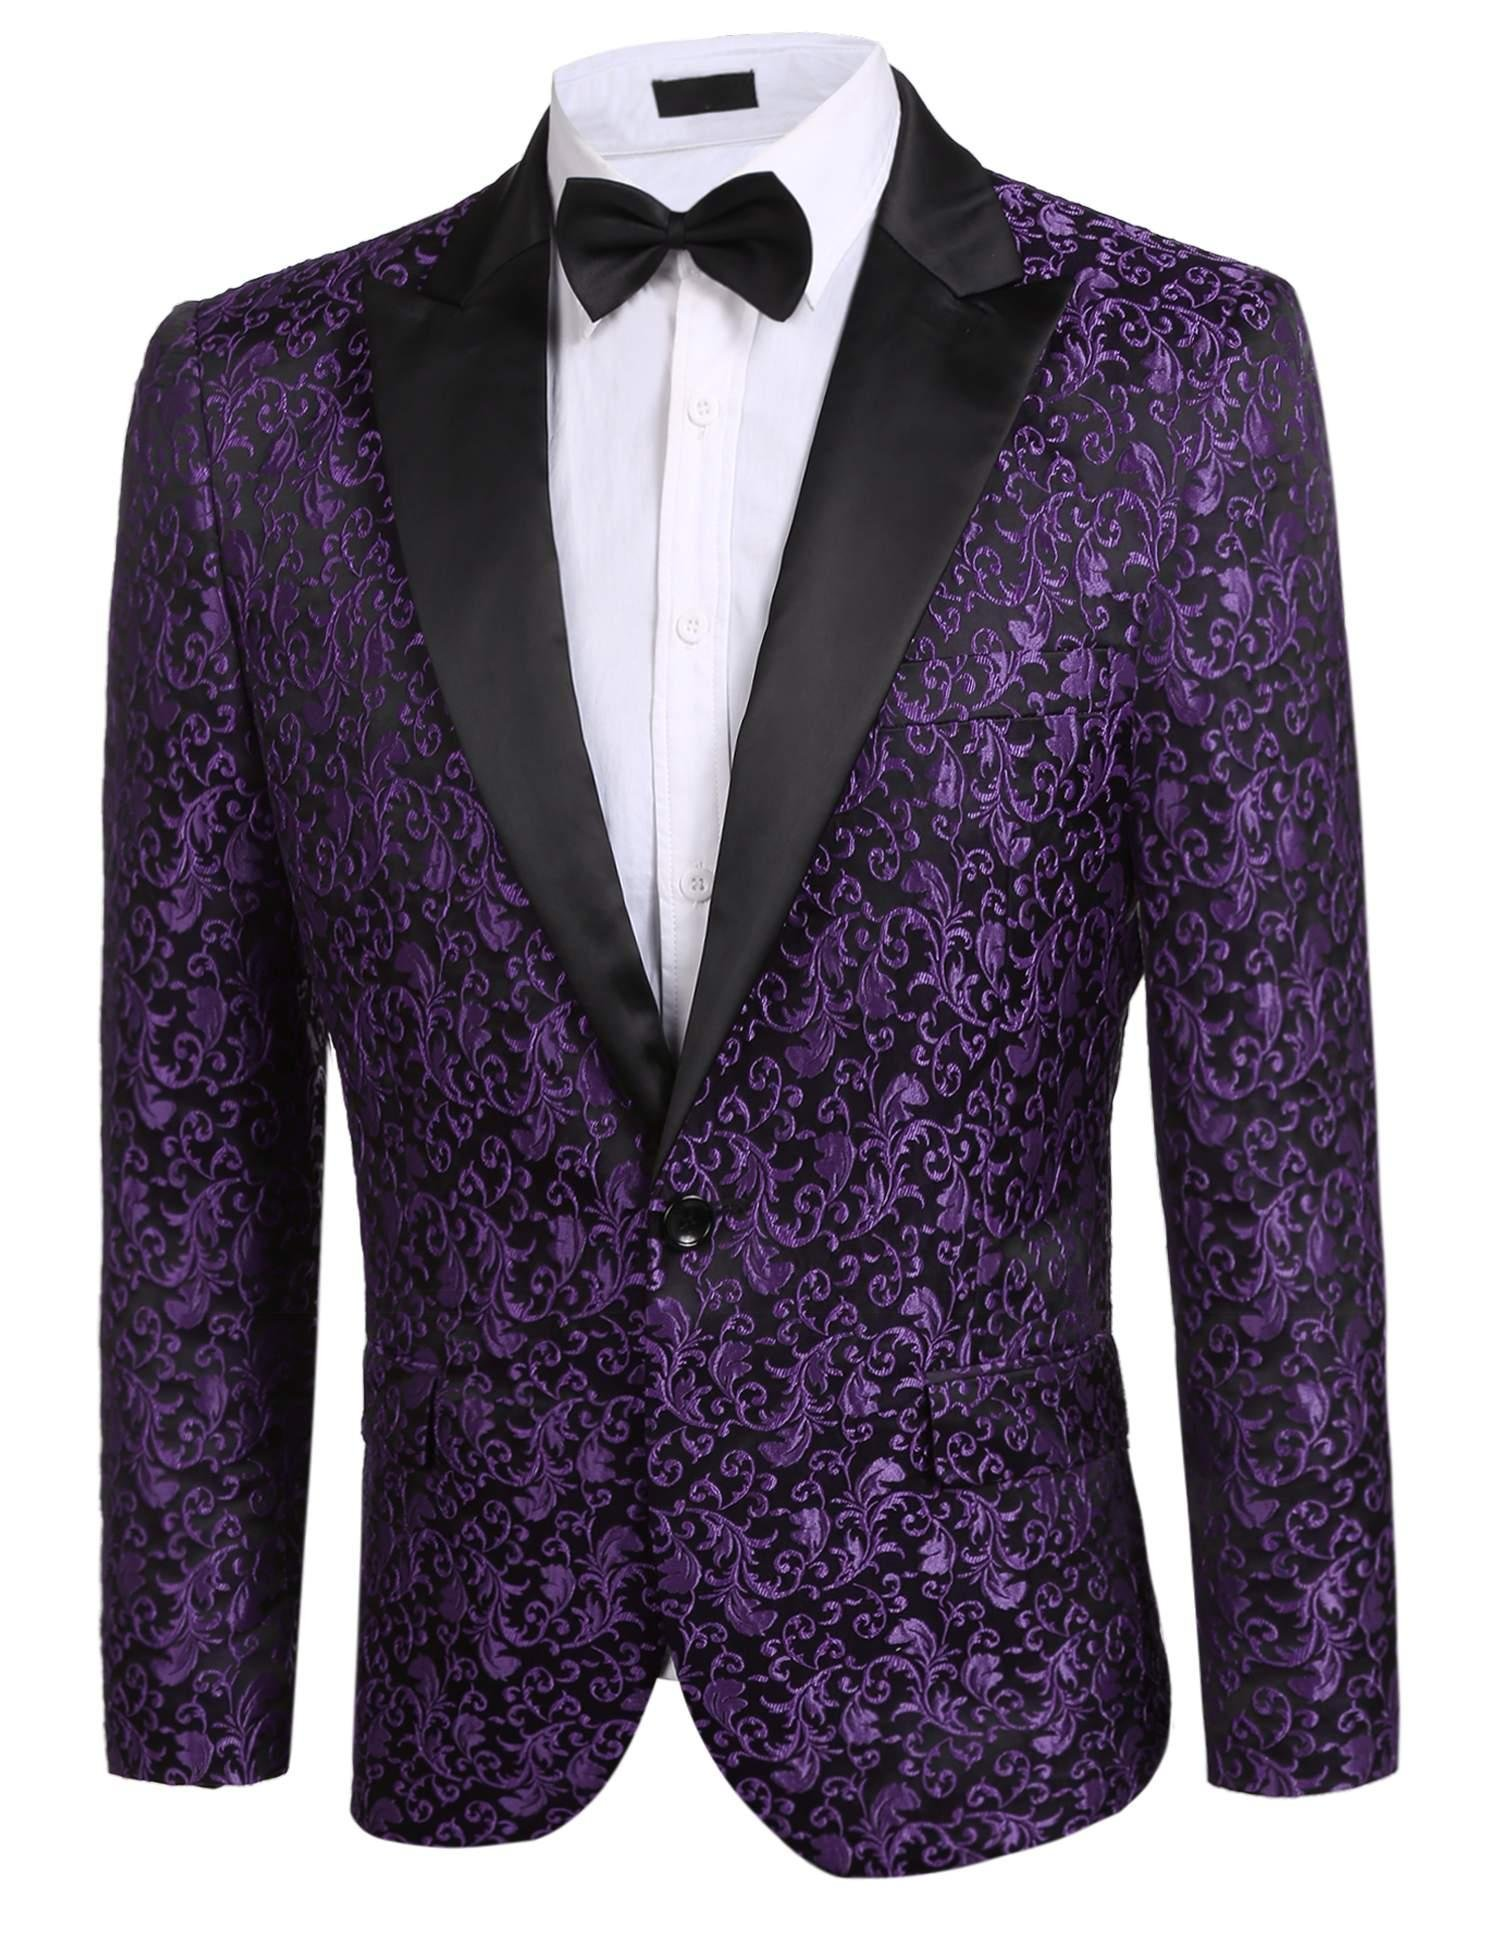 Donet Men's Floral Party Dress Suit Notched Lapel Stylish Dinner Jacket Wedding Blazer Prom Tuxedo Purple X-Large